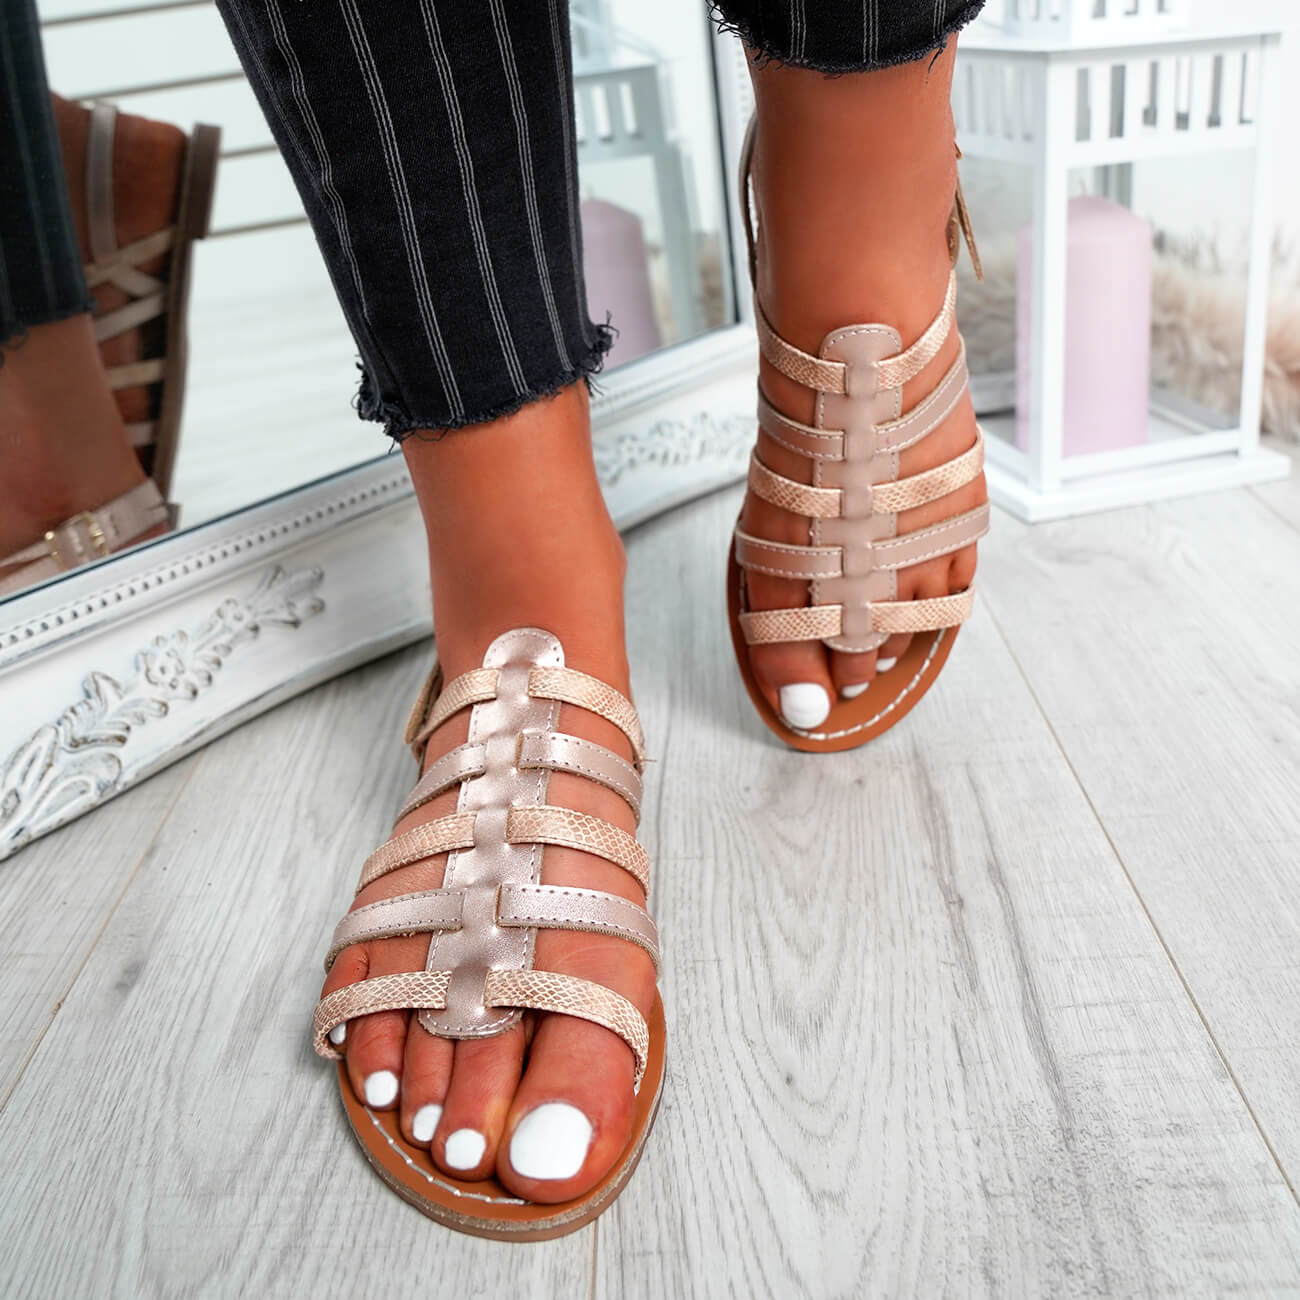 WOMENS-LADIES-BUCKLE-STRAP-FLAT-SUMMER-SANDALS-CASUAL-HOLIDAY-COMFY-SHOES-SIZE thumbnail 20